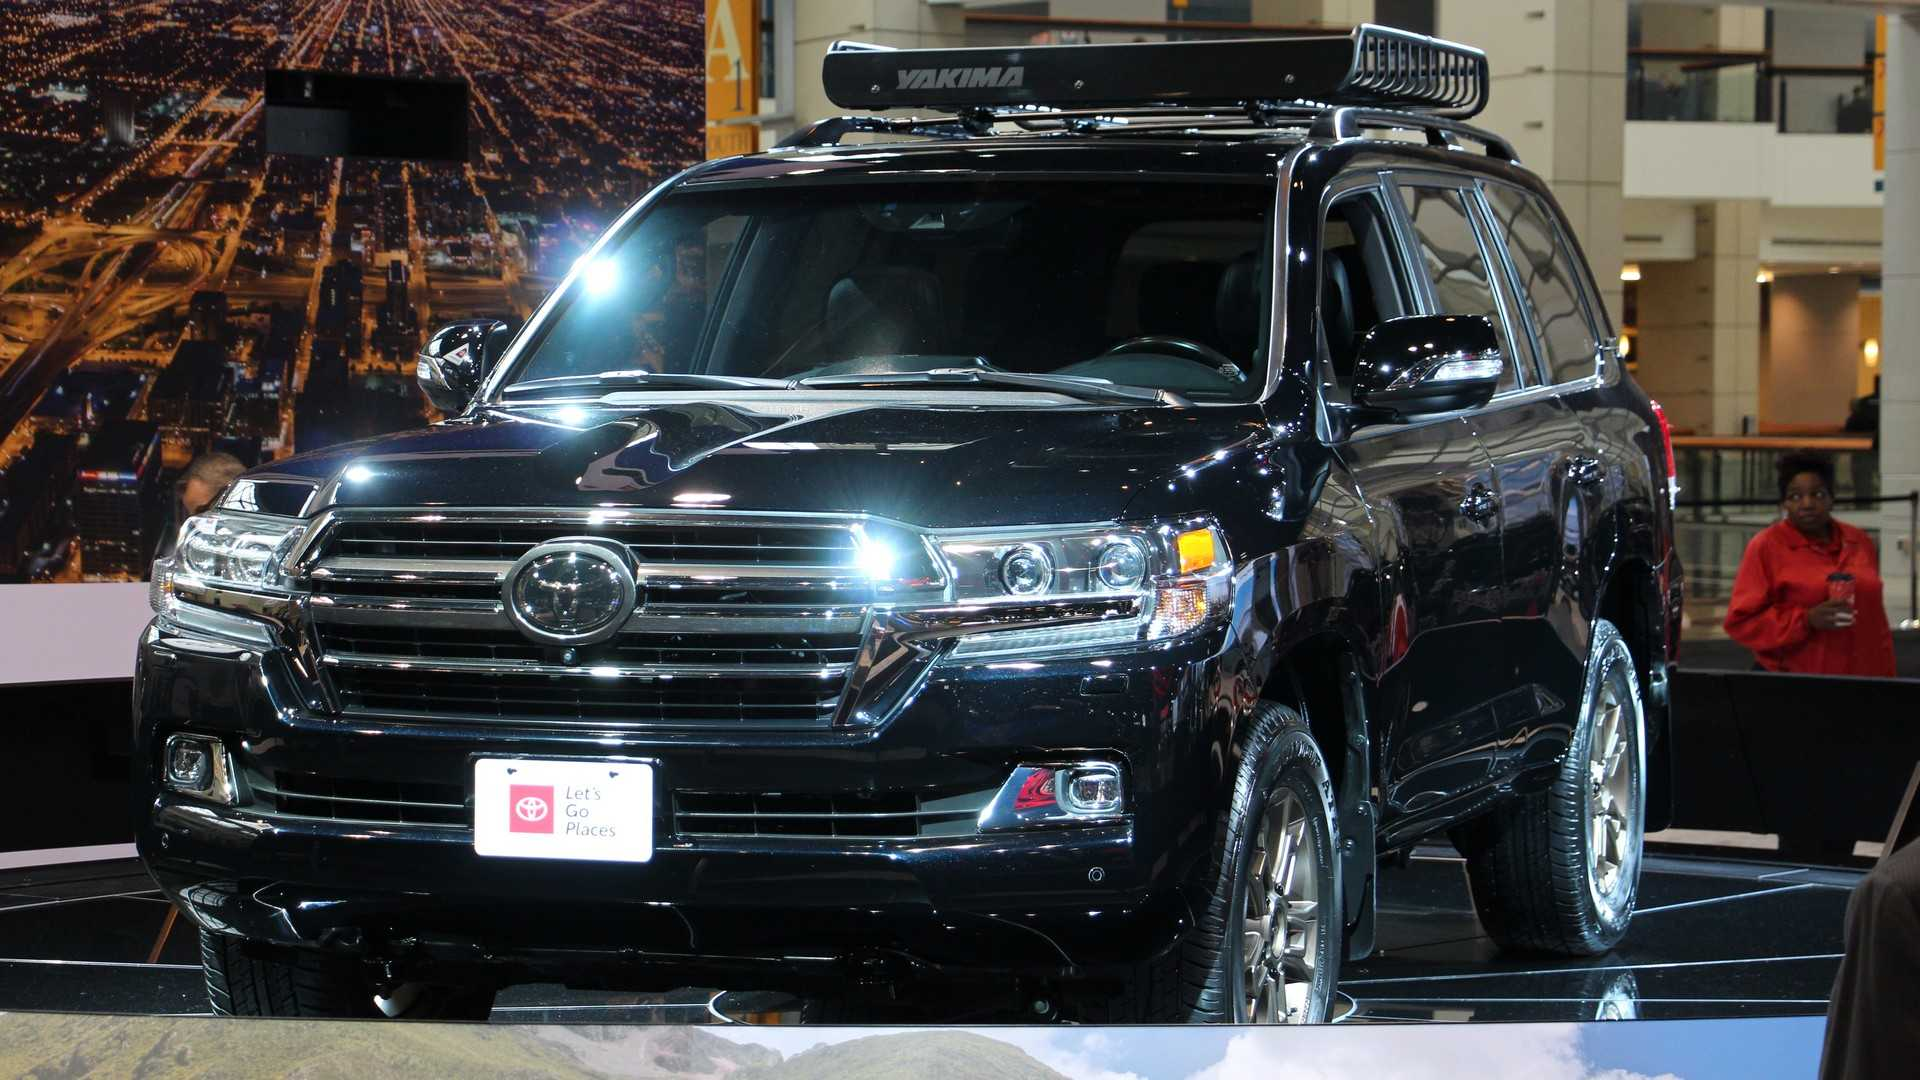 21 New 2020 Land Cruiser Release Date